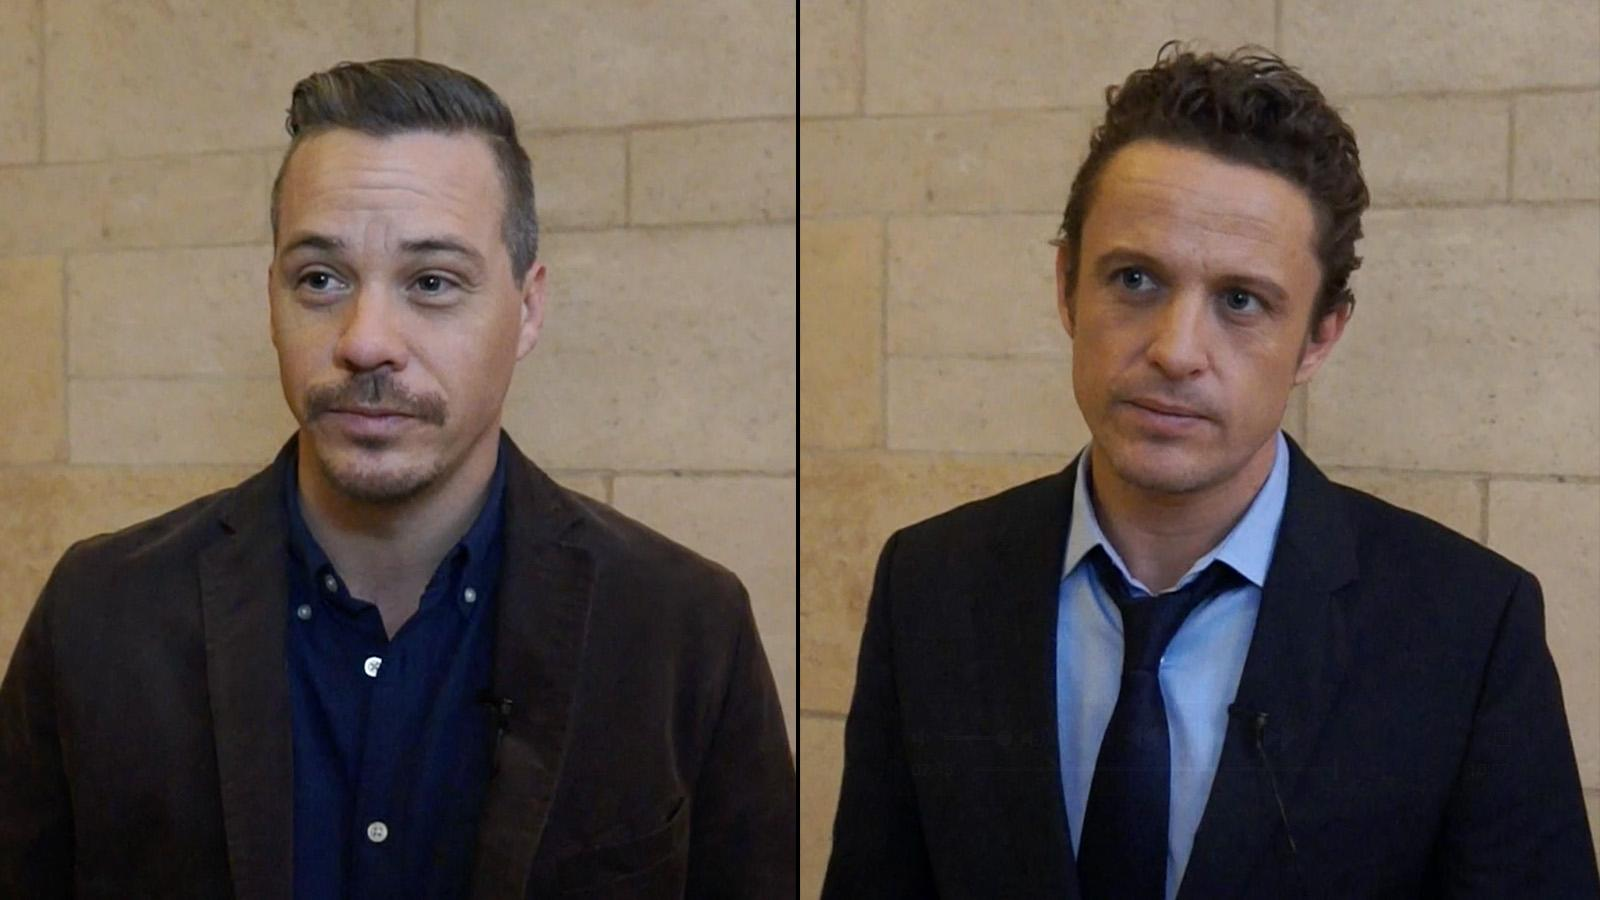 'Game Of Silence's' Michael Raymond-James & David Lyons: Which Previous Show Did They Work On Together?